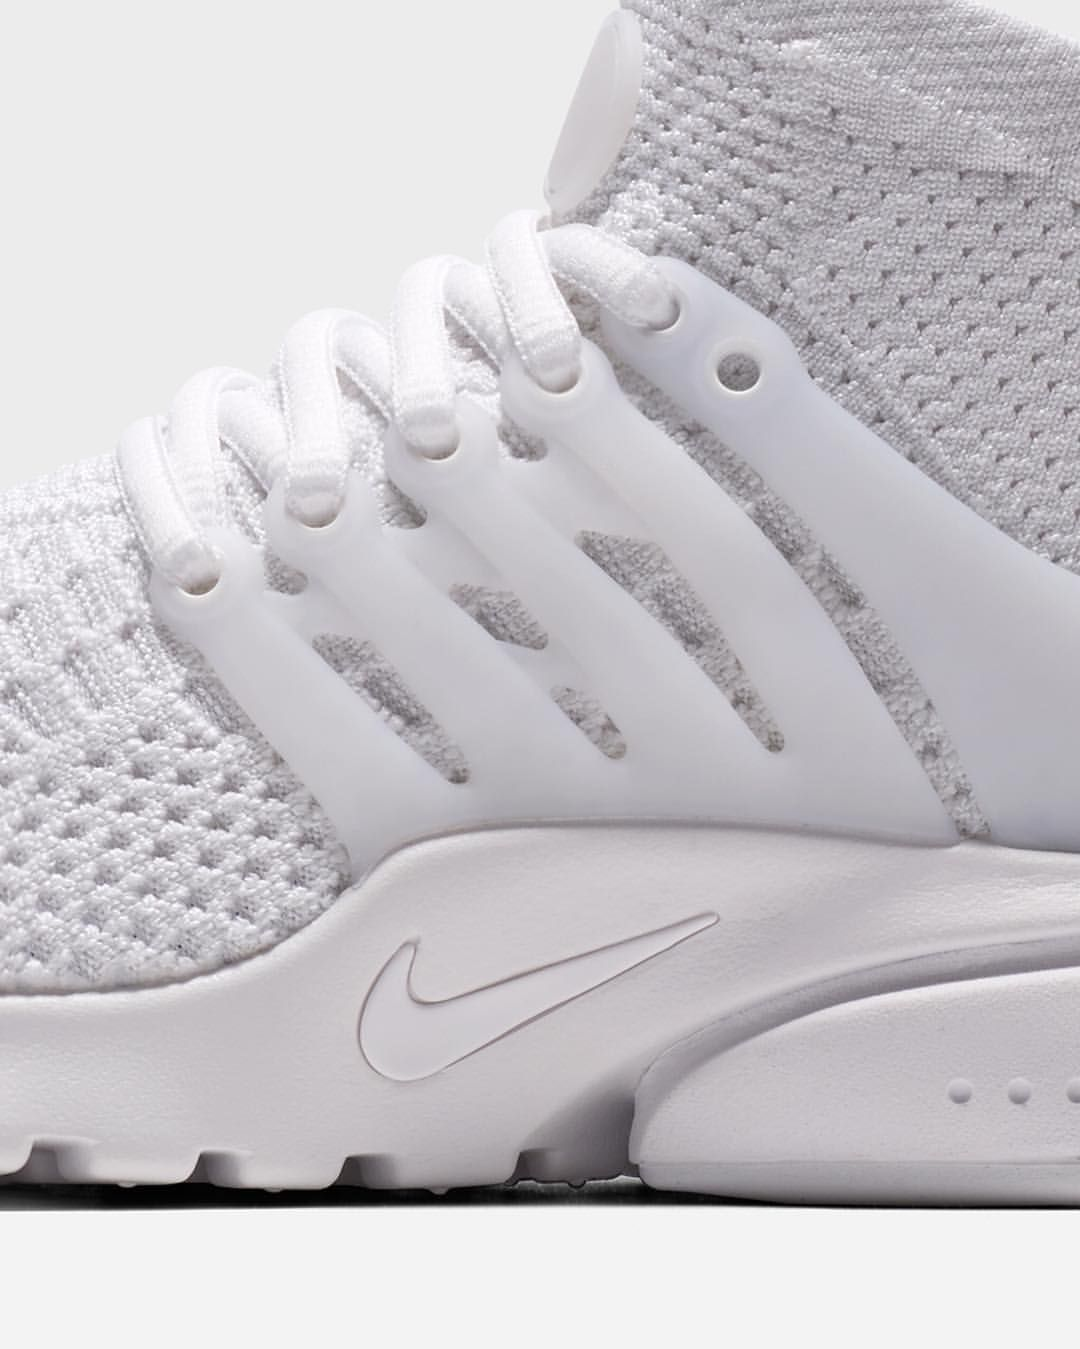 The Air Presto s signature midfoot cage adds support atop a redesigned  Flyknit upper. The women s Air Presto Ultra Flyknit arrives at nike.com  presto and ... b69416eeb